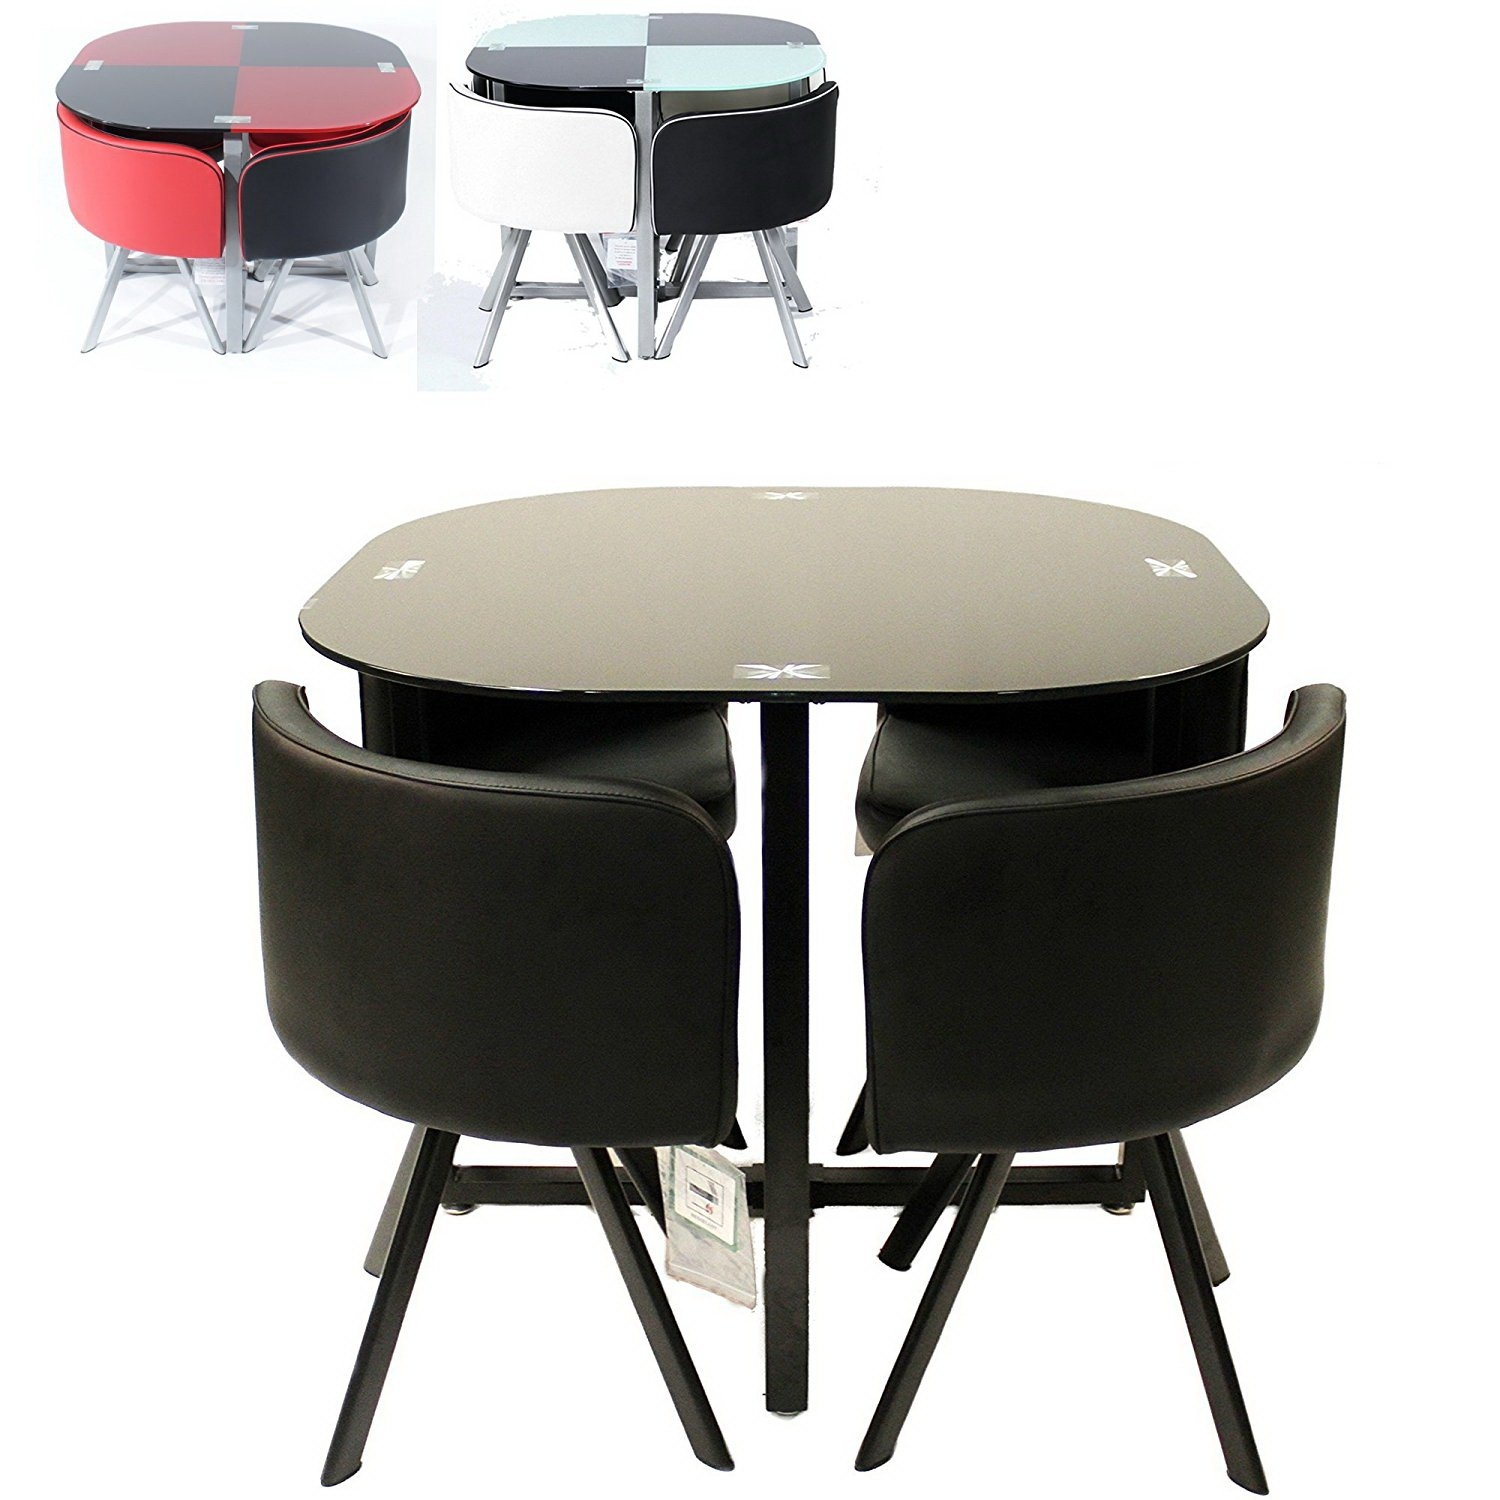 Merveilleux Dining Tables : Space Saving Dining Table Sneakergreet .